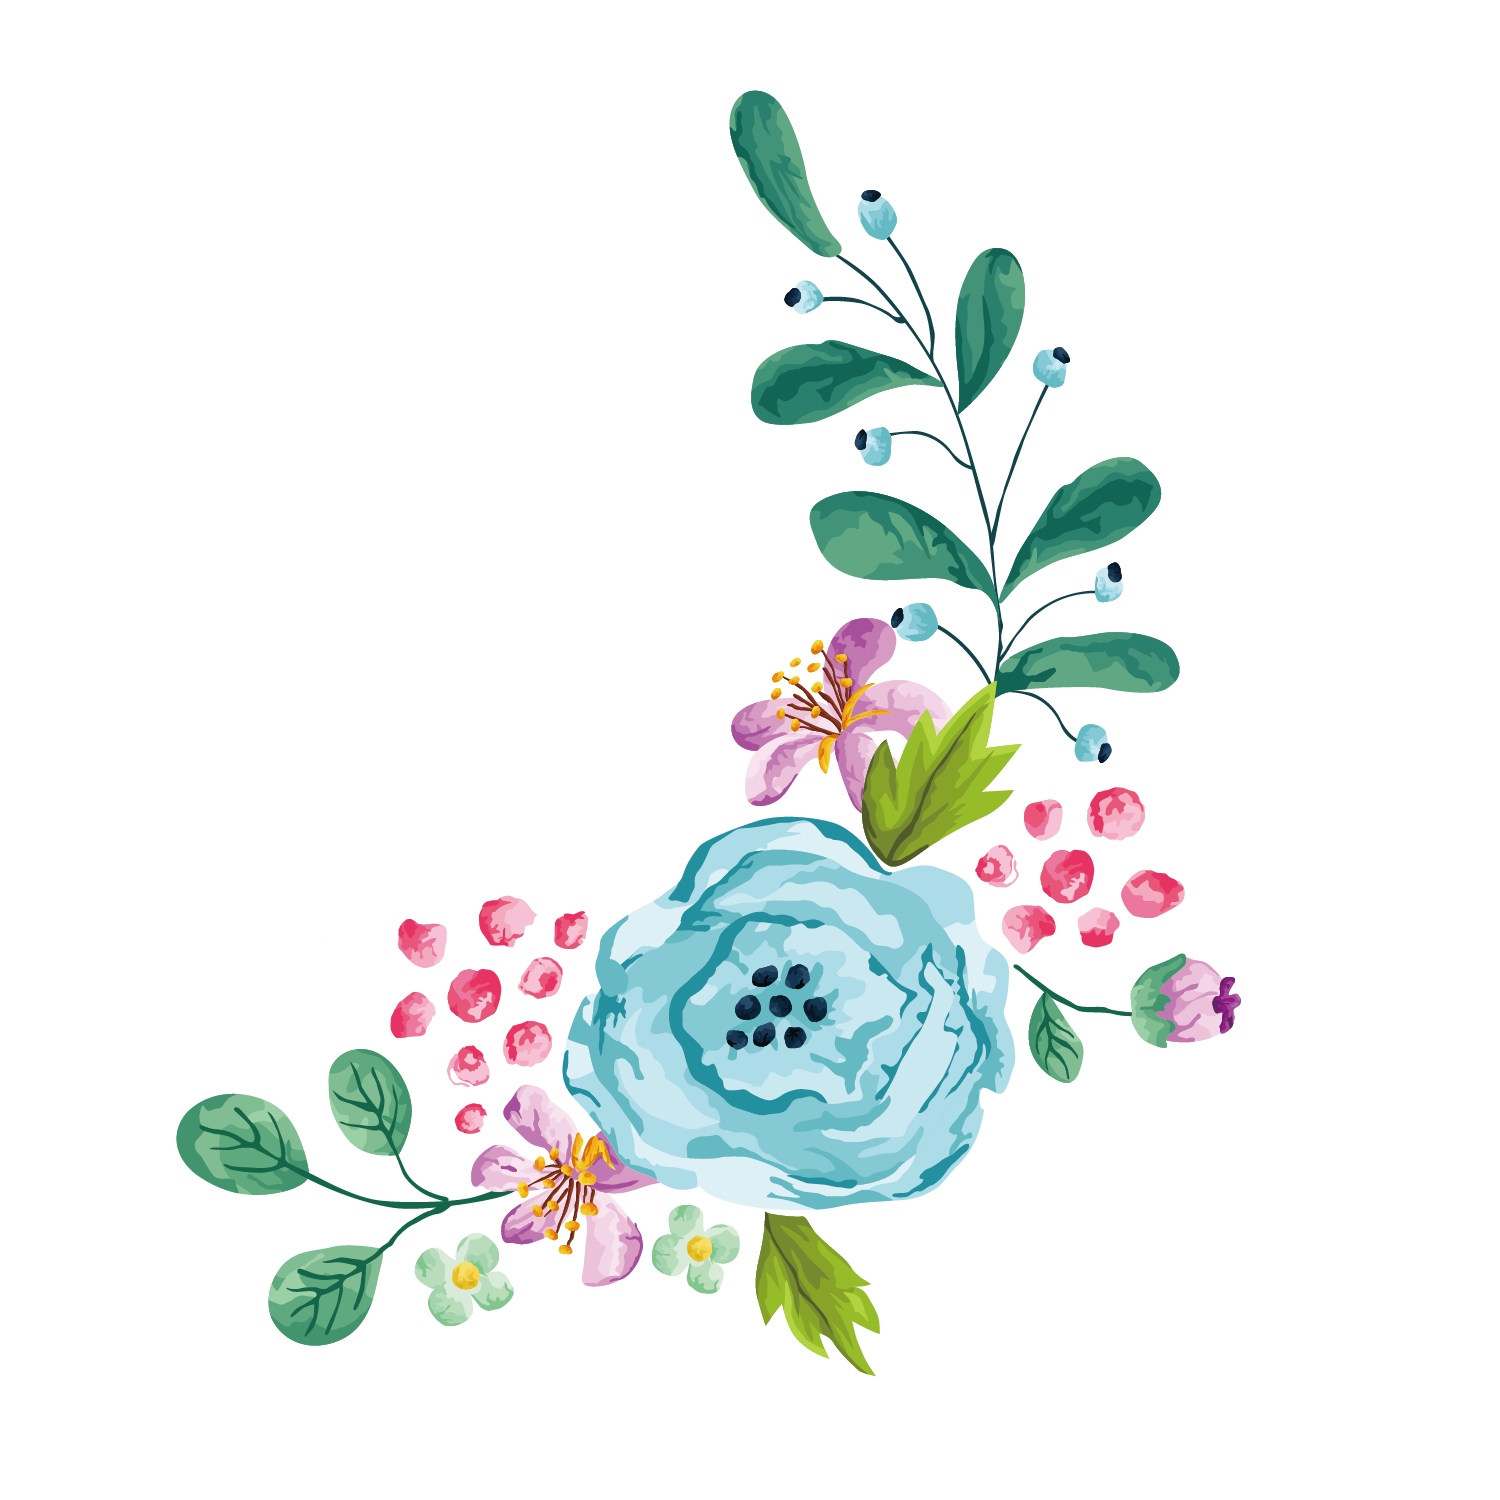 Clipart borders wildflower. Flower stock photography euclidean